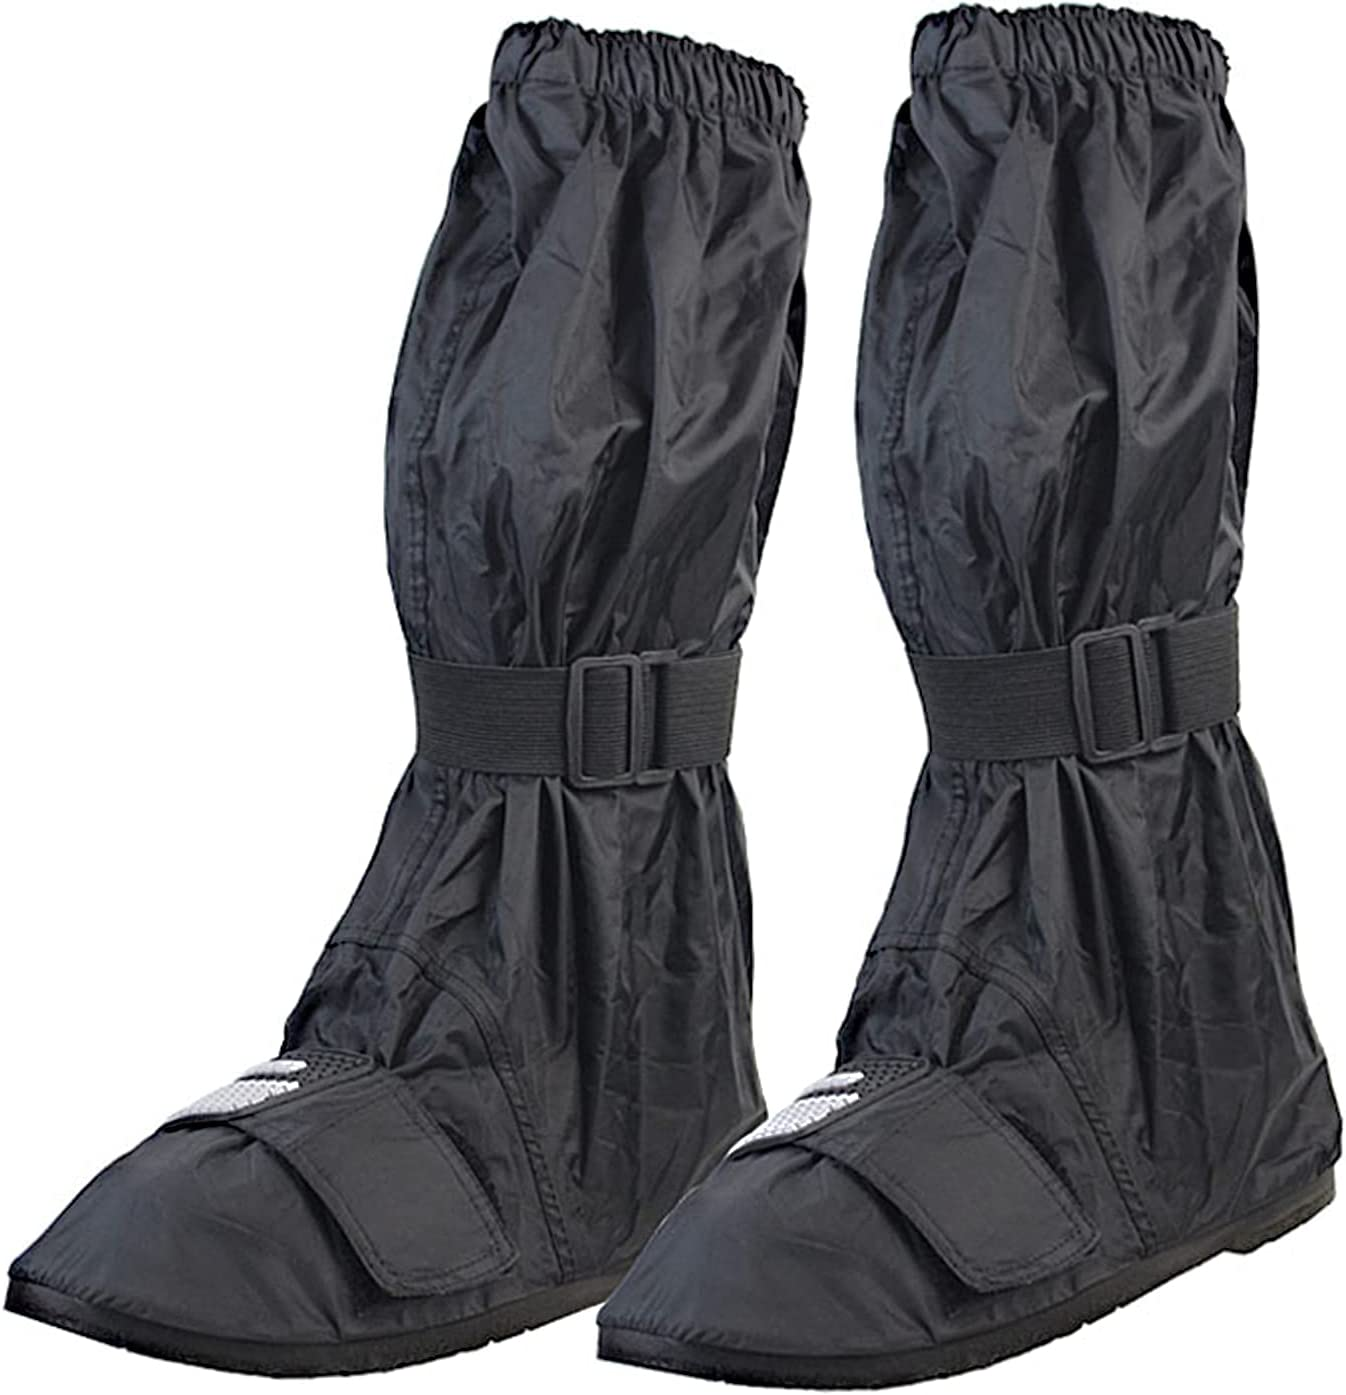 LNIUB Limited time Max 43% OFF for free shipping Waterproof Shoe Cover Men's Rain Prot Motorcycle Gear